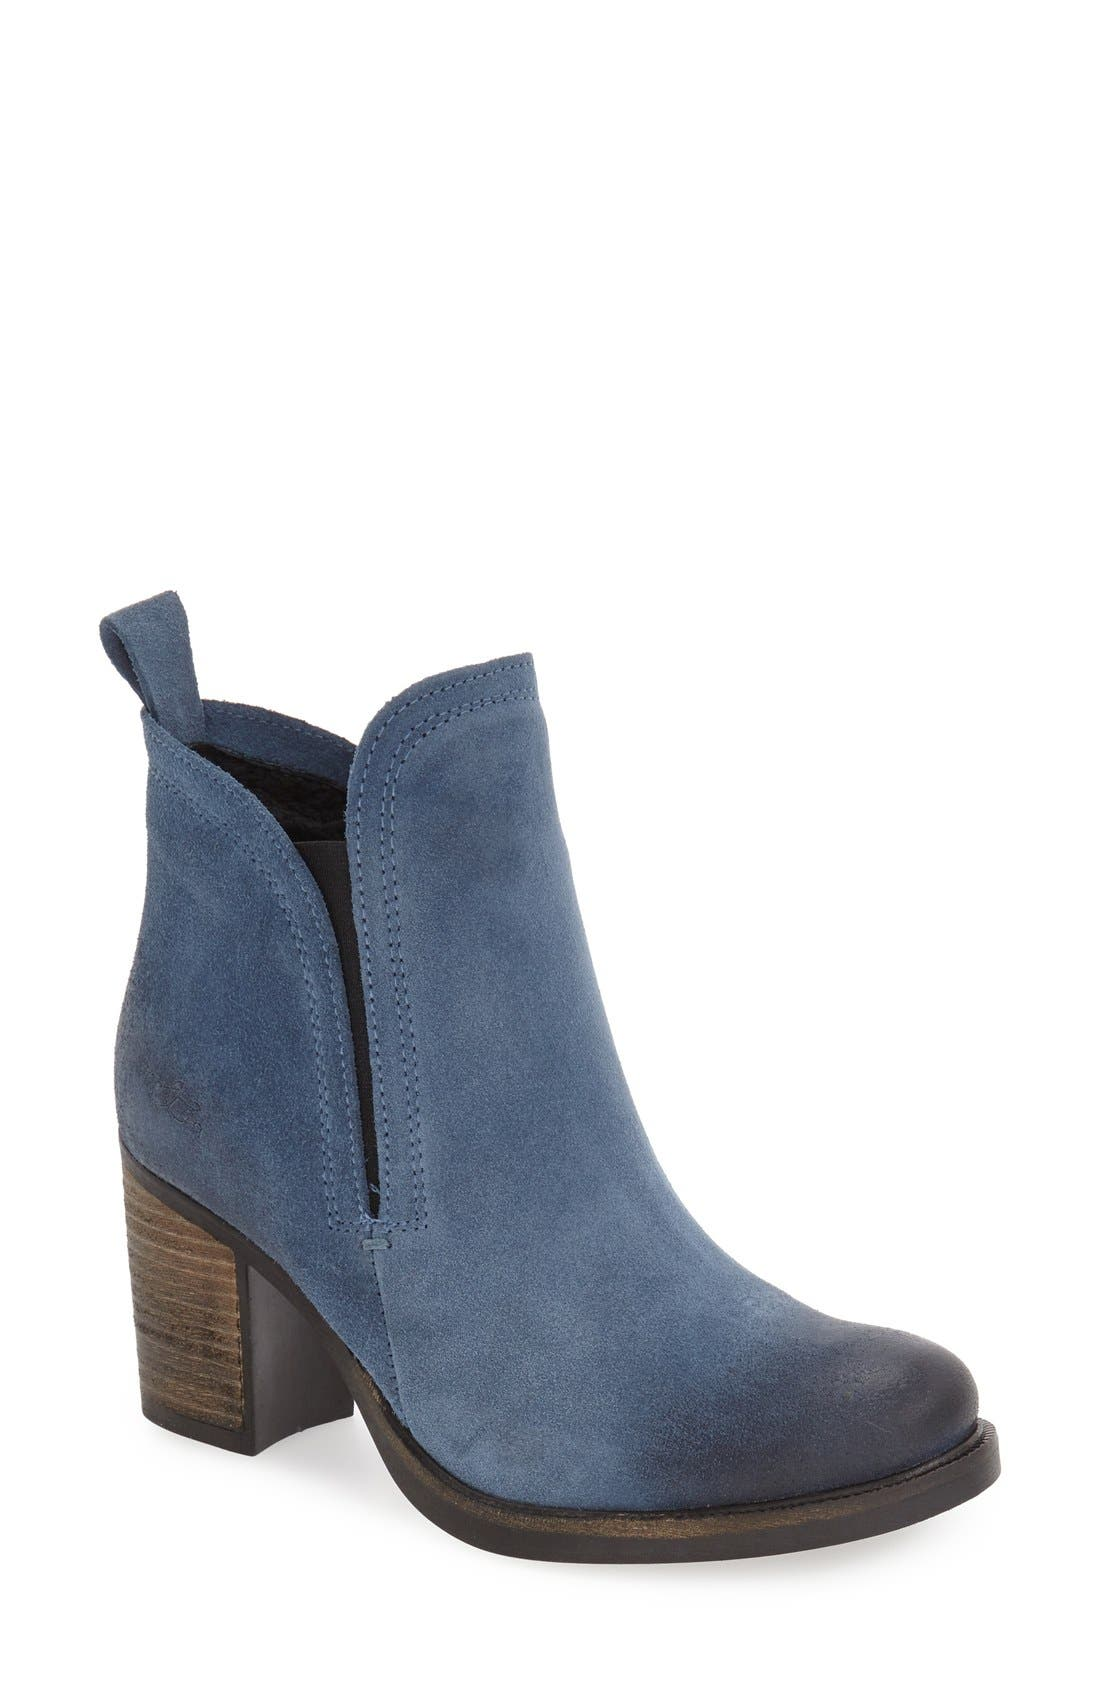 Bos. & Co. 'Belfield' Waterproof Chelsea Boot (Women)